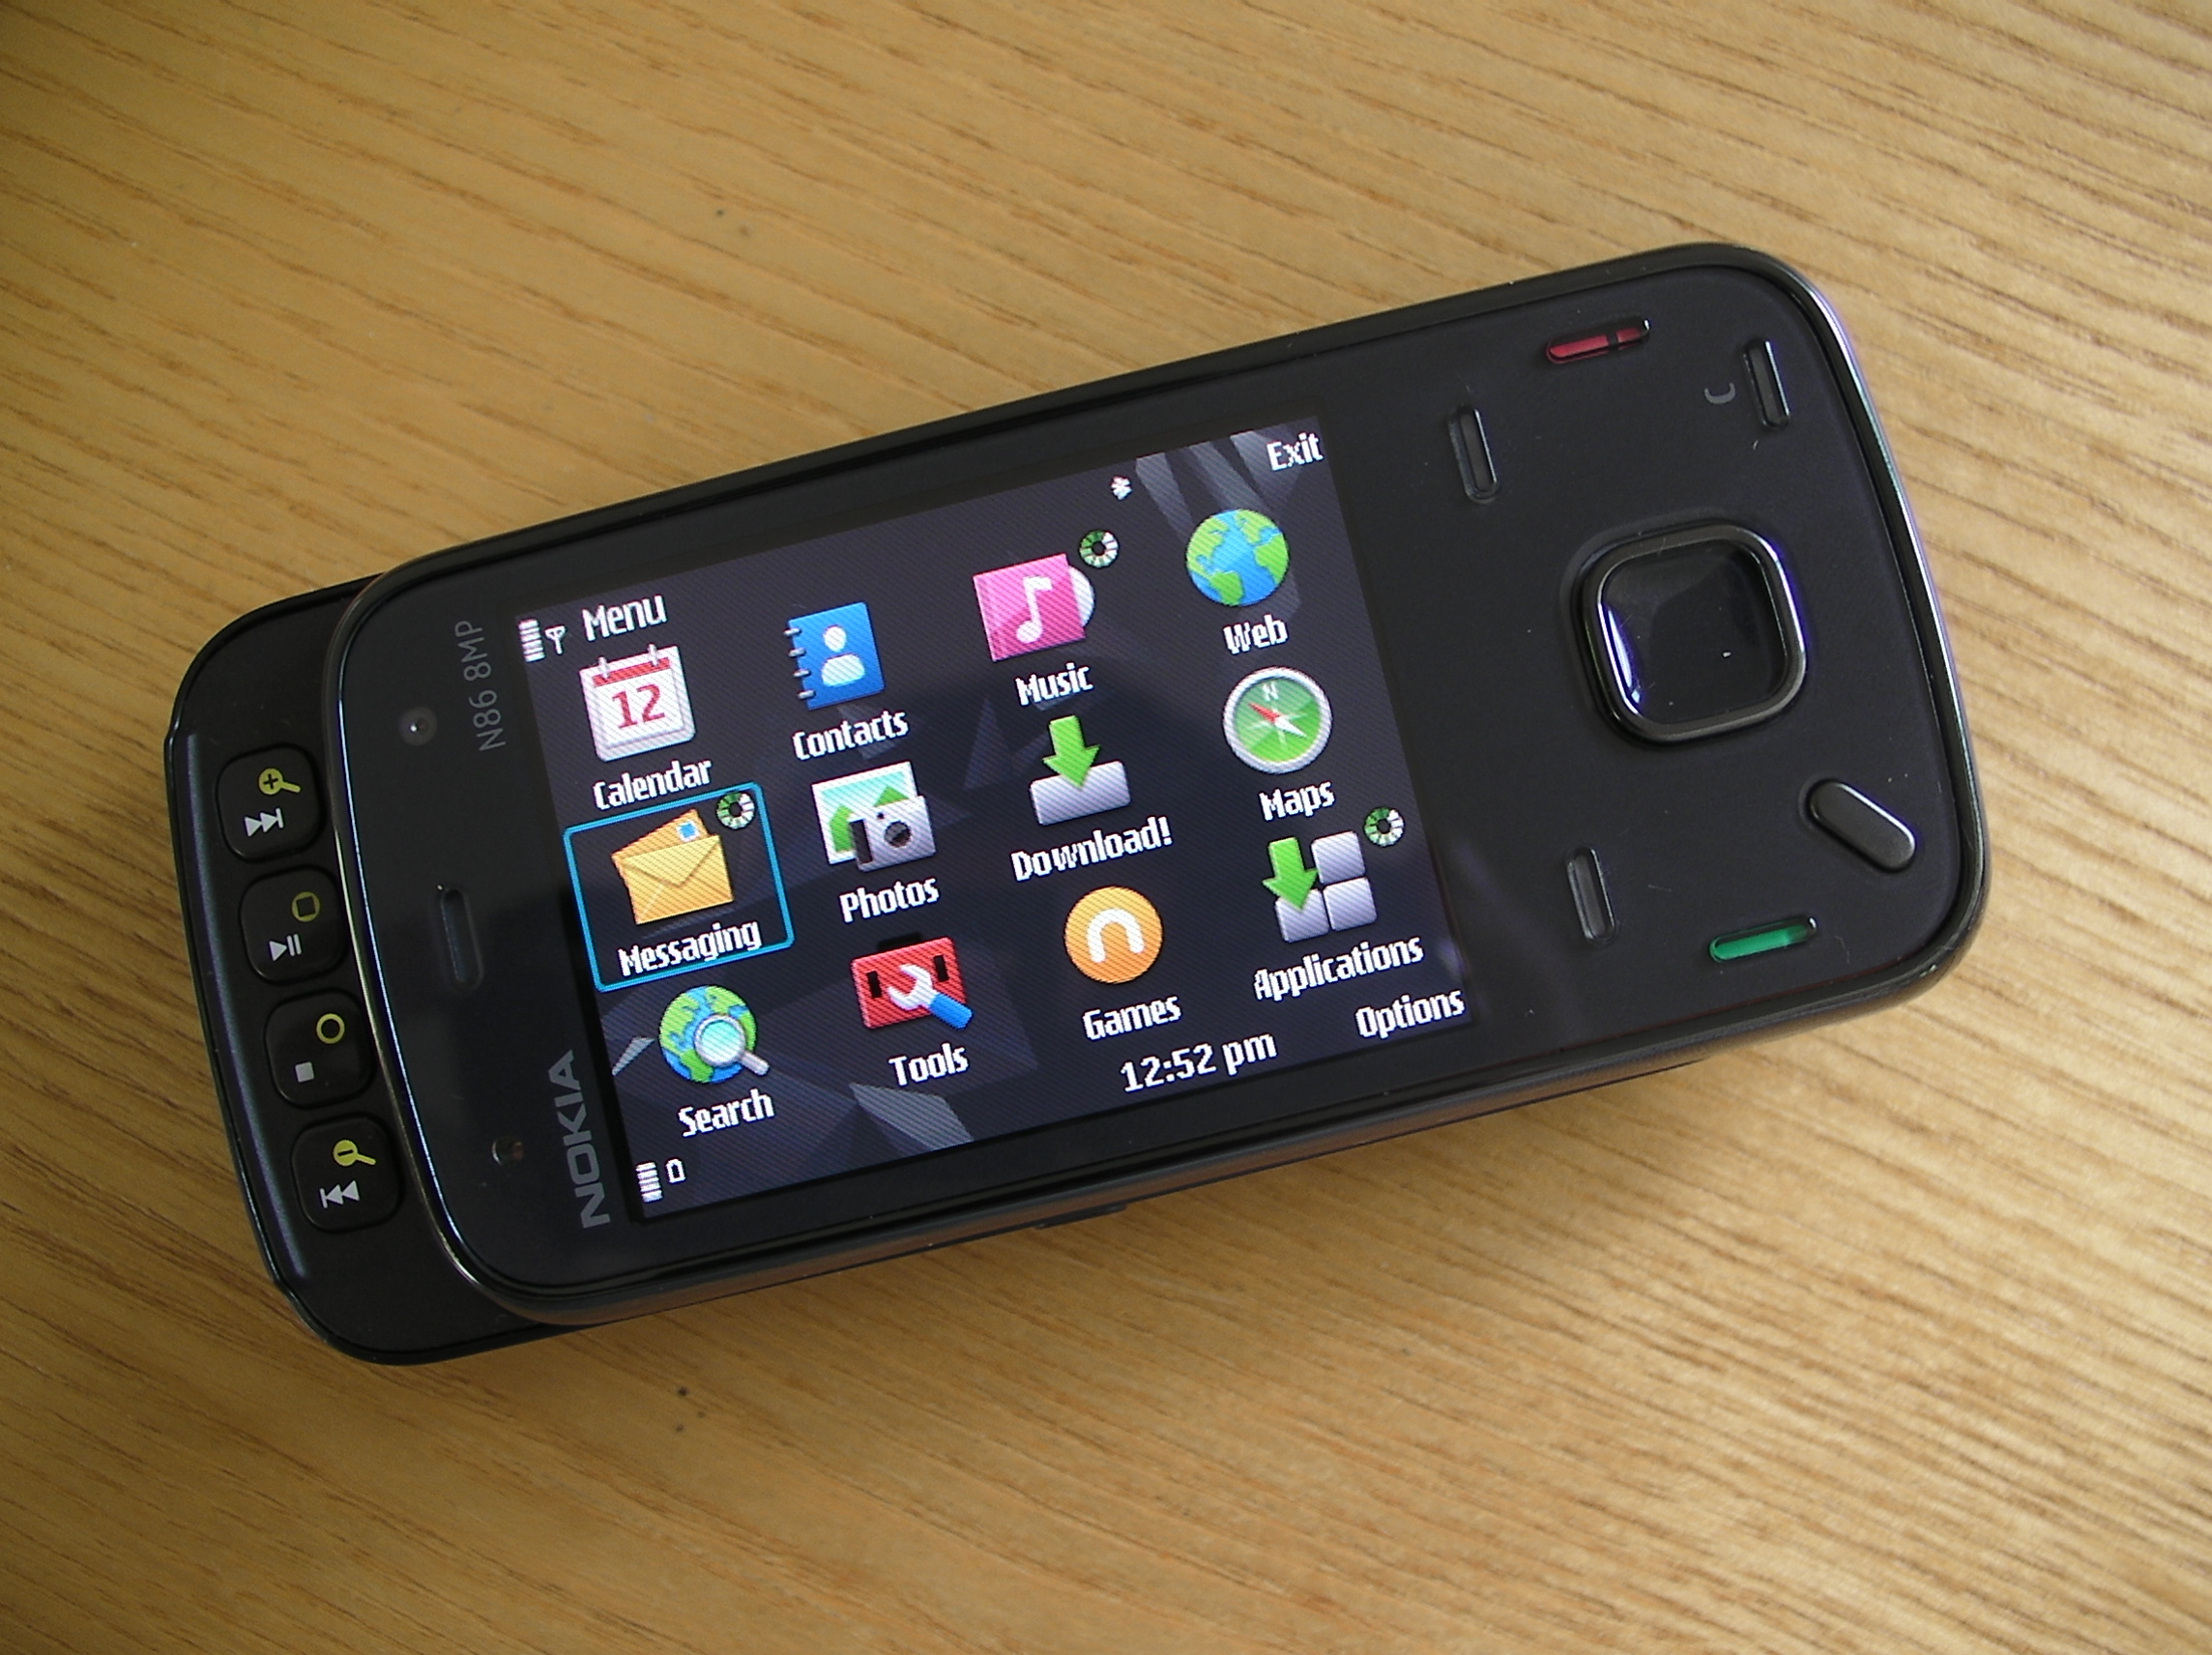 Nokia N86 8MP Review - Part 1 - Overview review